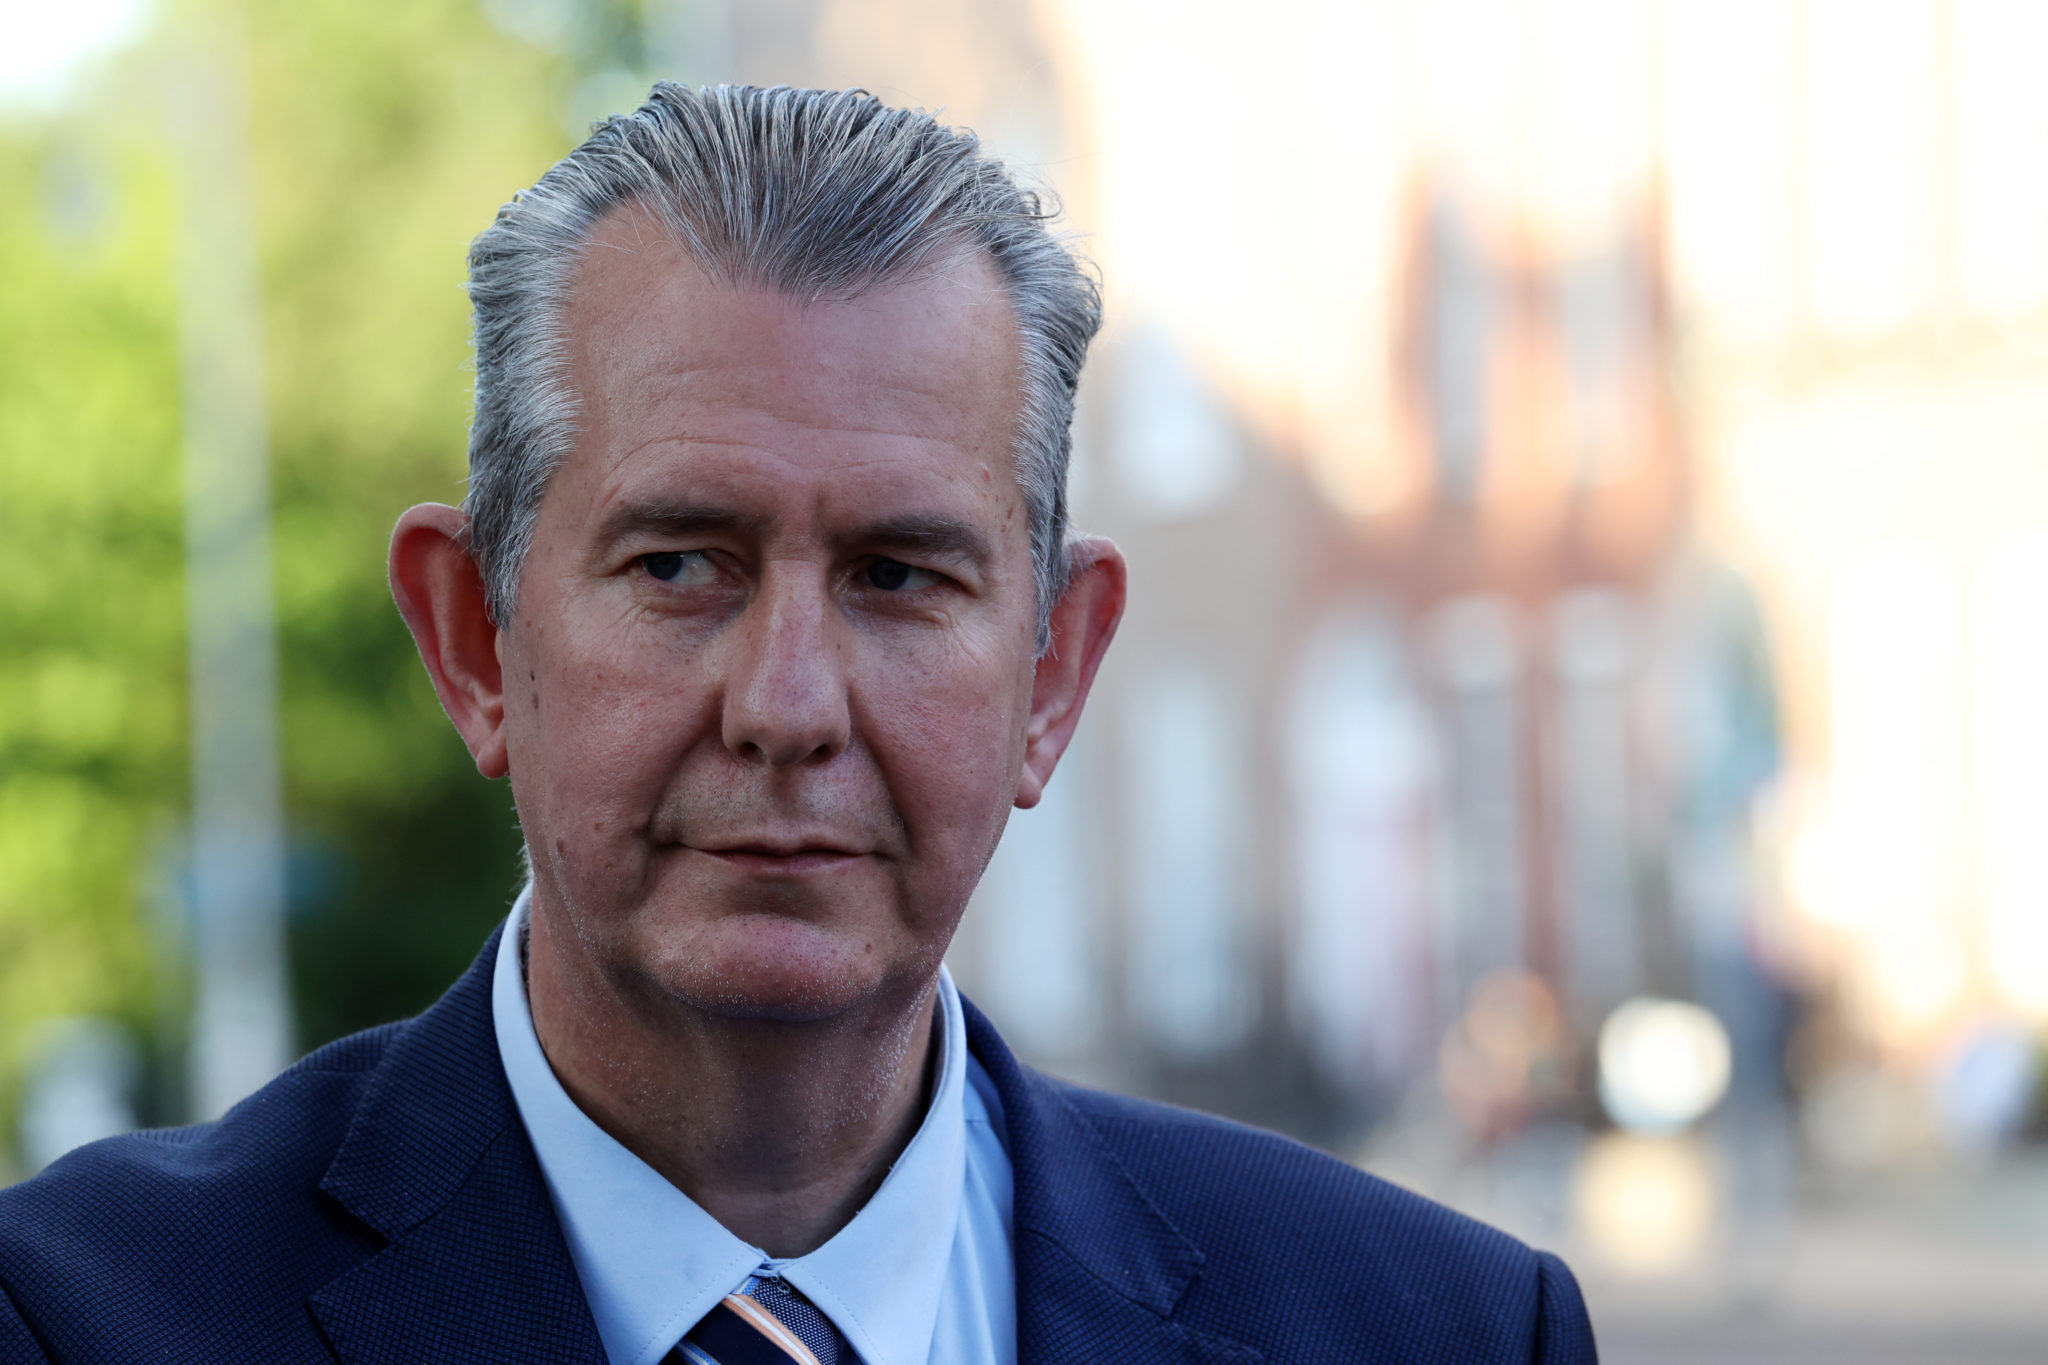 Edwin Poots speaking to the media after leaving Government Buildings in Dublin